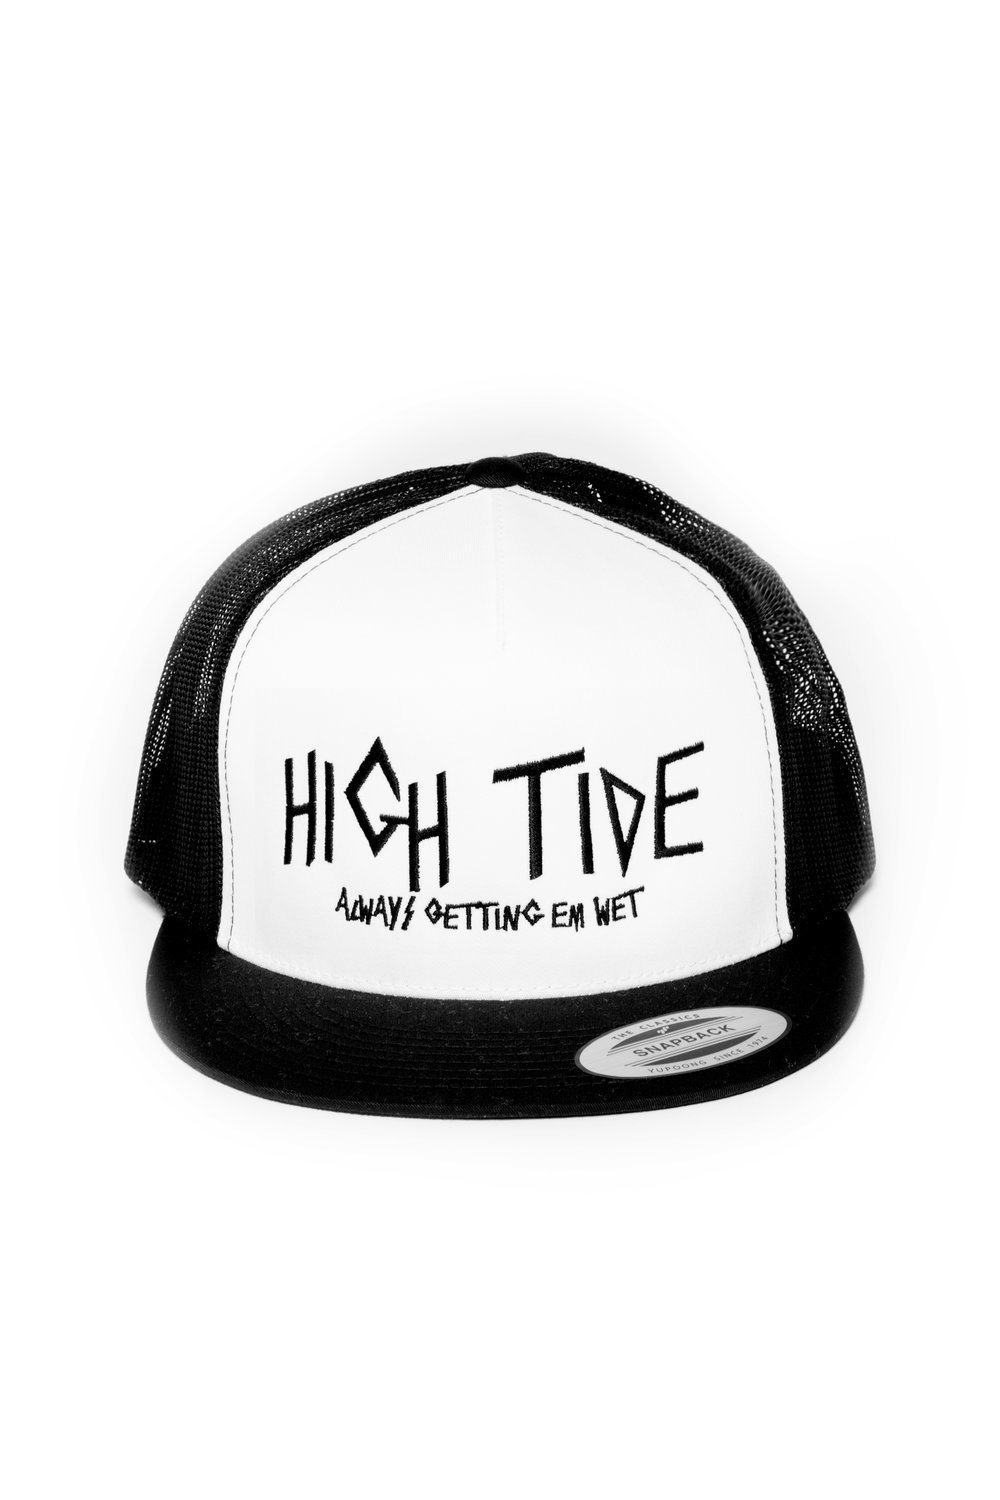 hightide-trucker.jpg